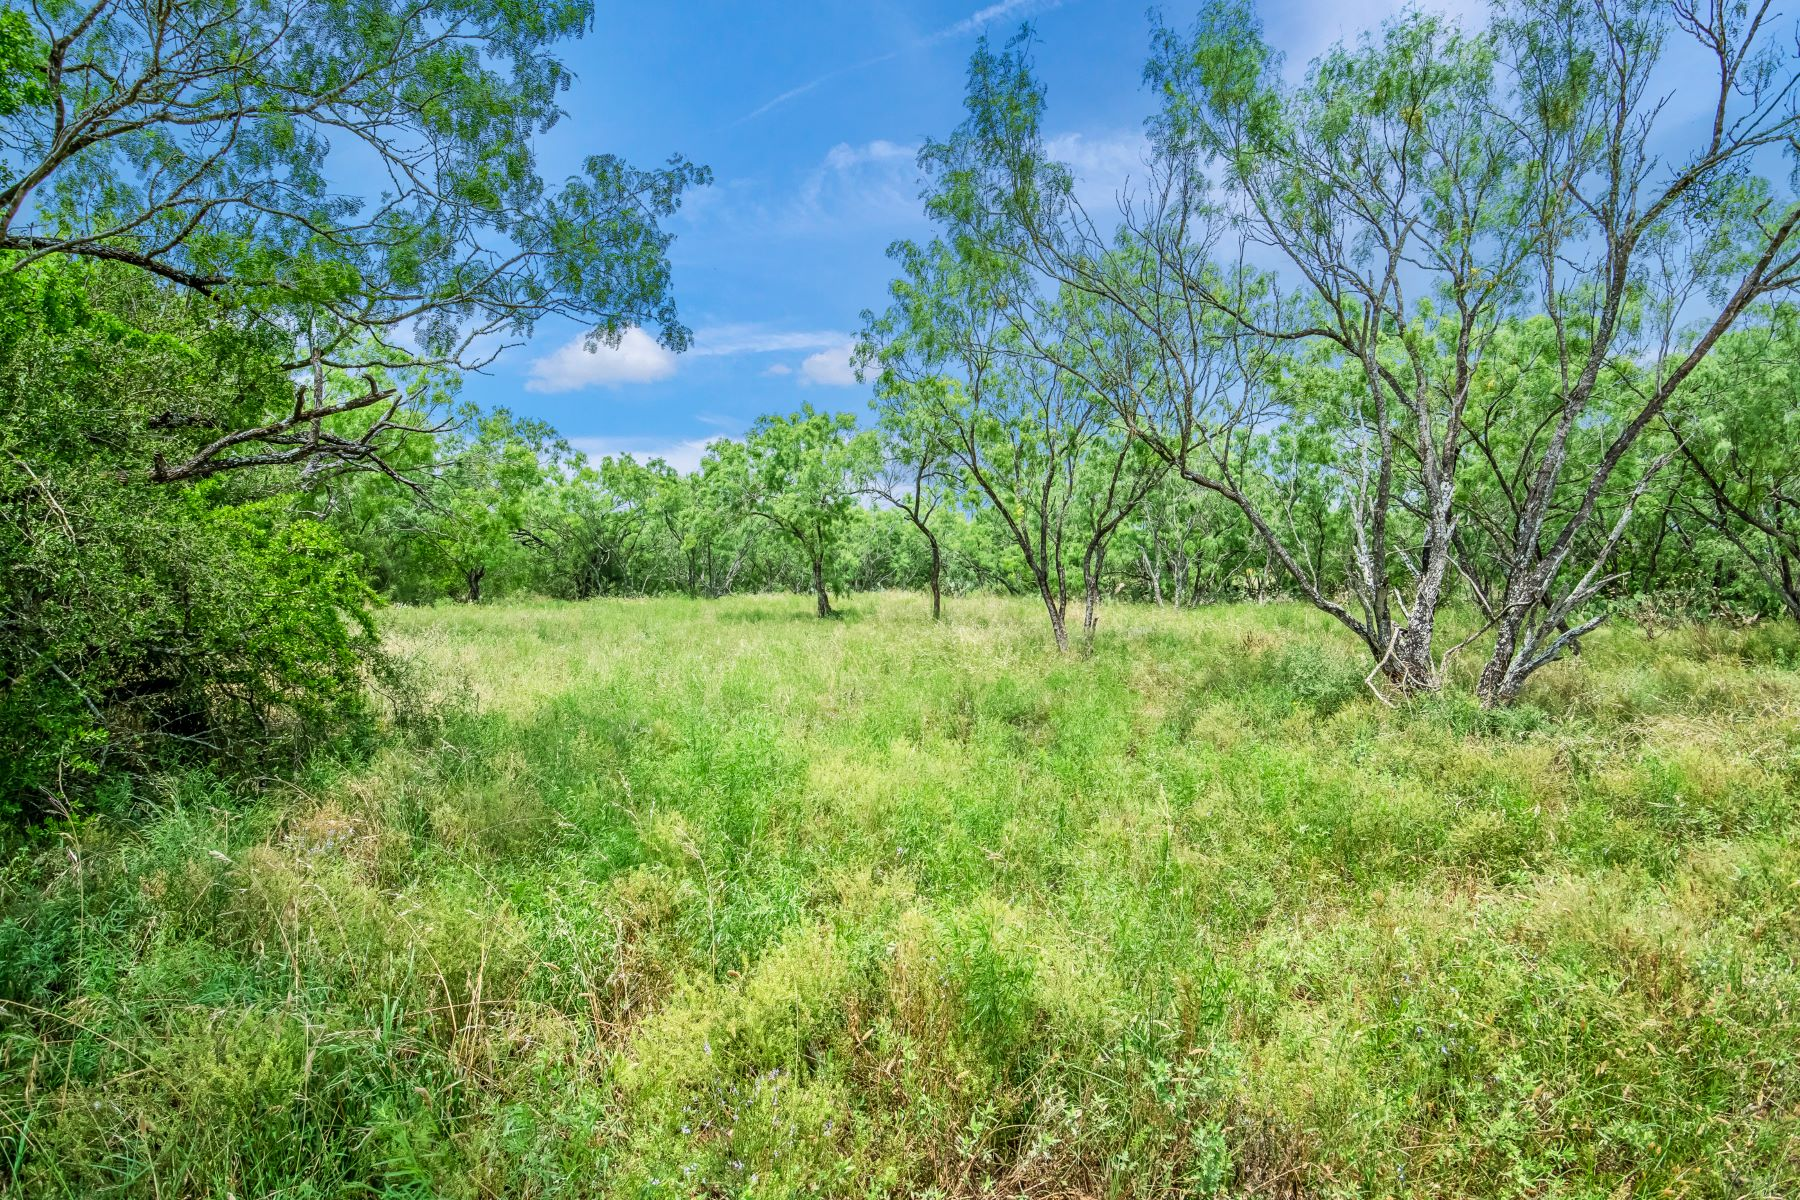 Land for Sale at New Development Silesia In A Supreme Location 14663 Silesia Drive Lot 2 St. Hedwig, Texas 78152 United States